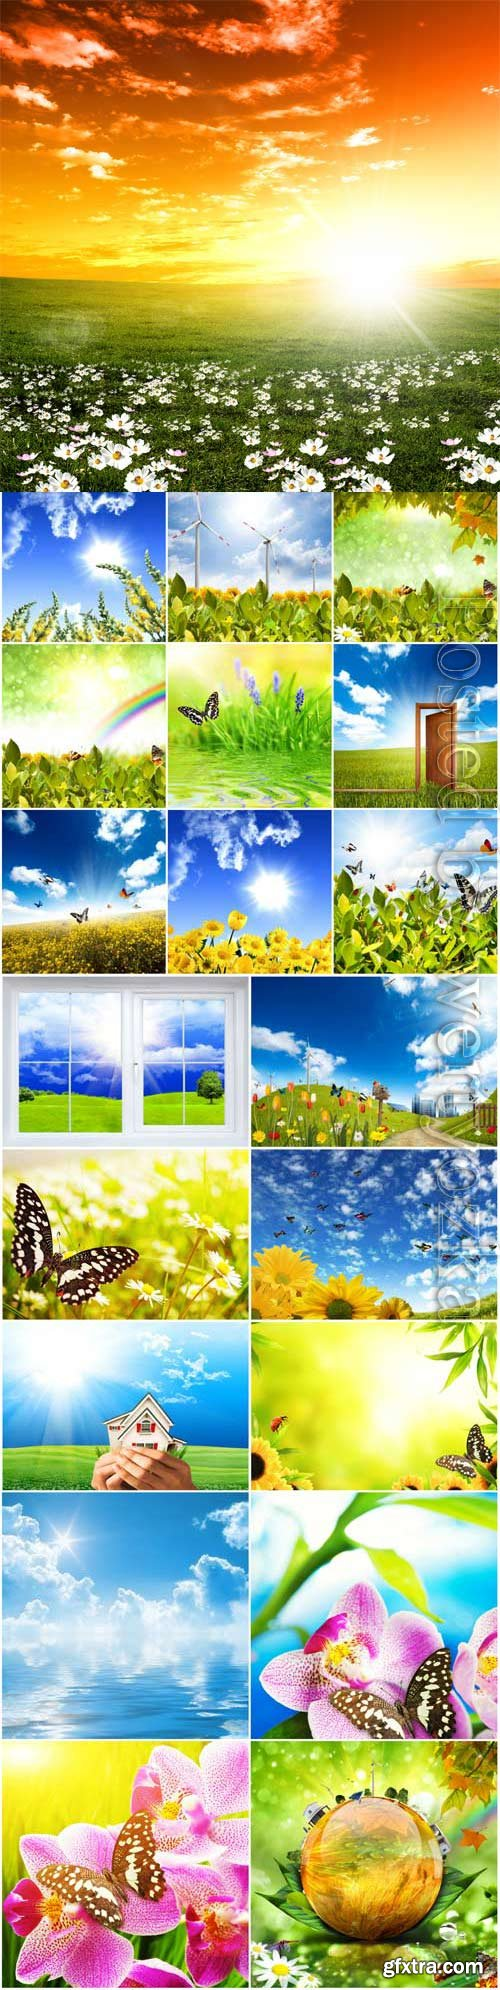 Floral summer backgrounds stock photo